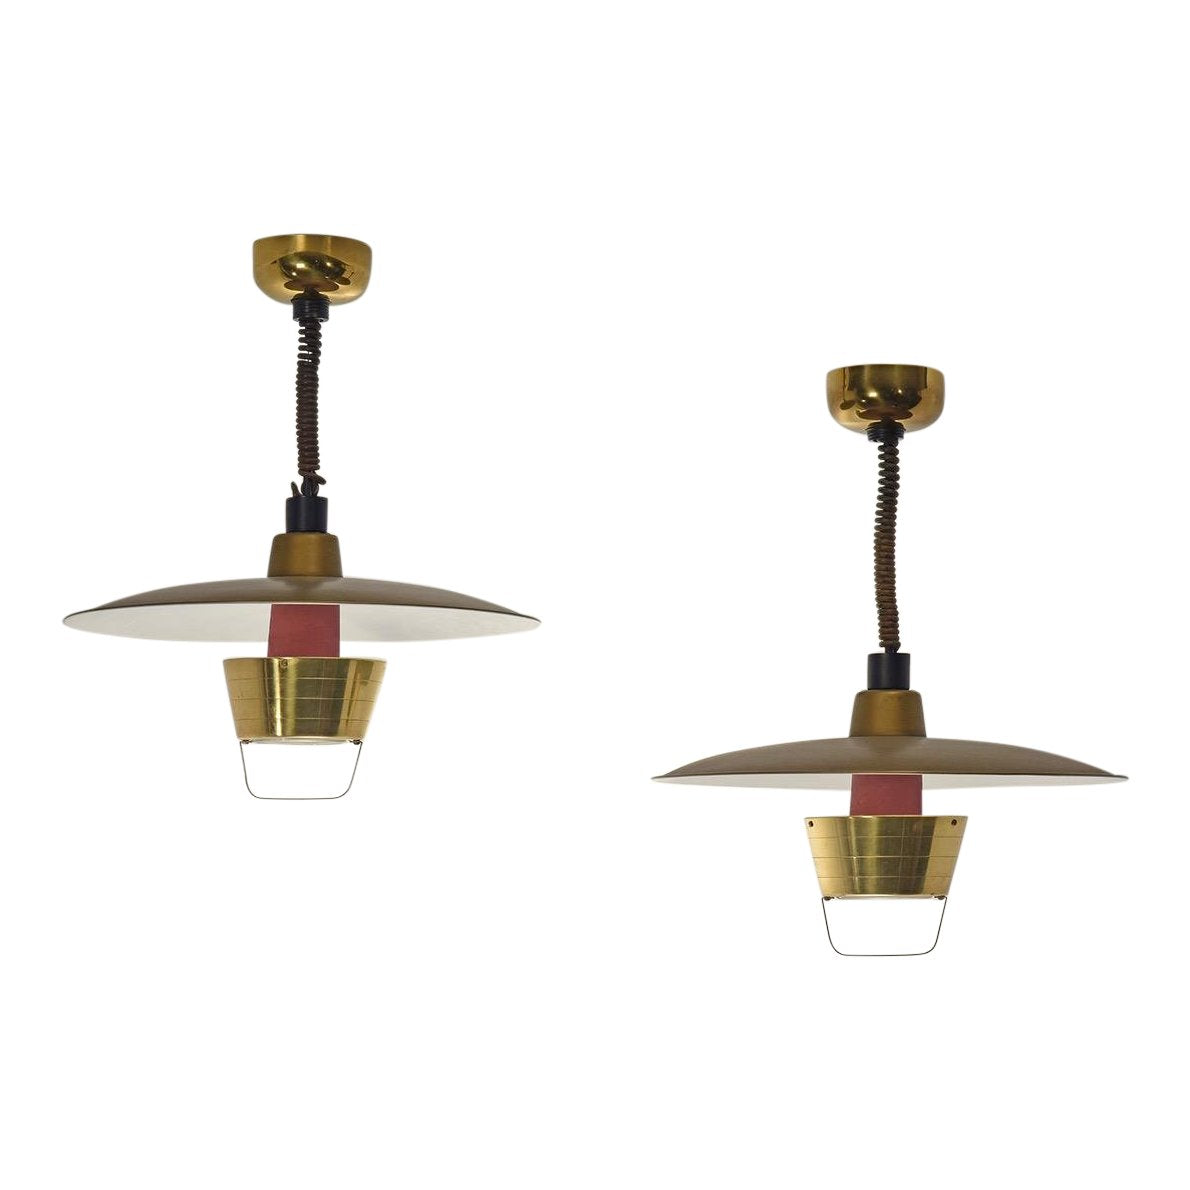 John C. Virden Pair of Ceiling Lights, Model V1110, 1950s - The Exchange Int